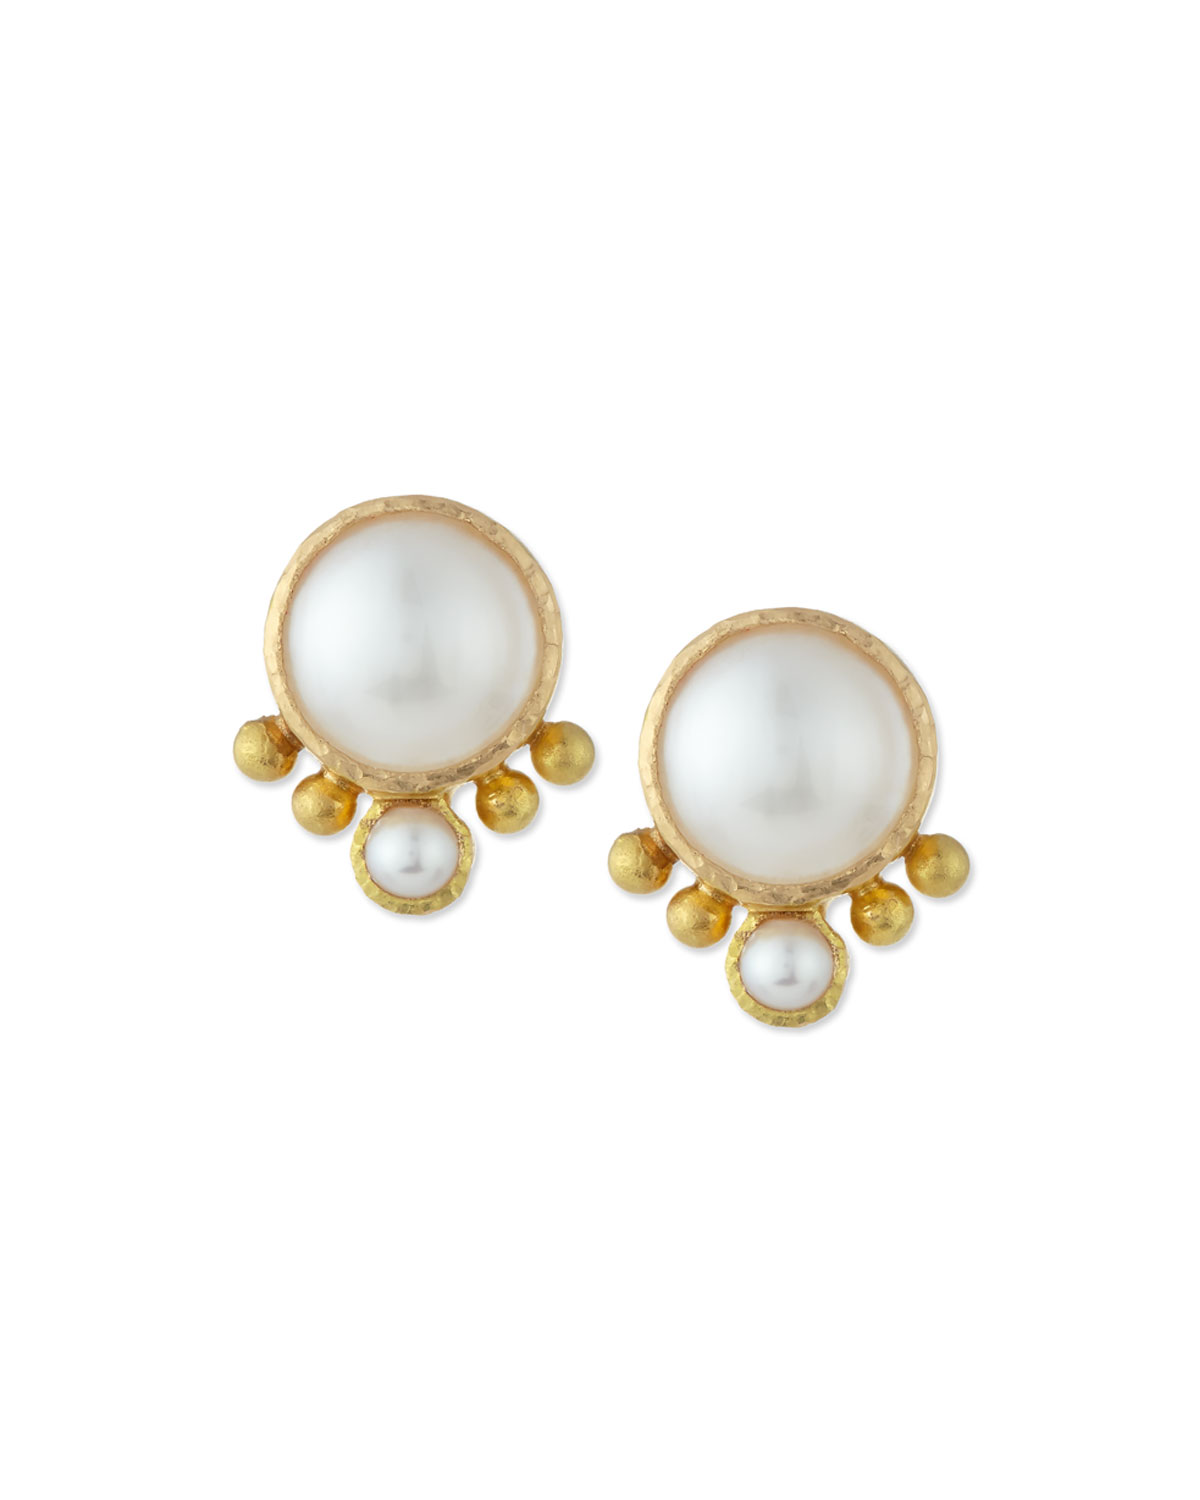 Elizabeth Locke Mabe Pearl Stud Earrings